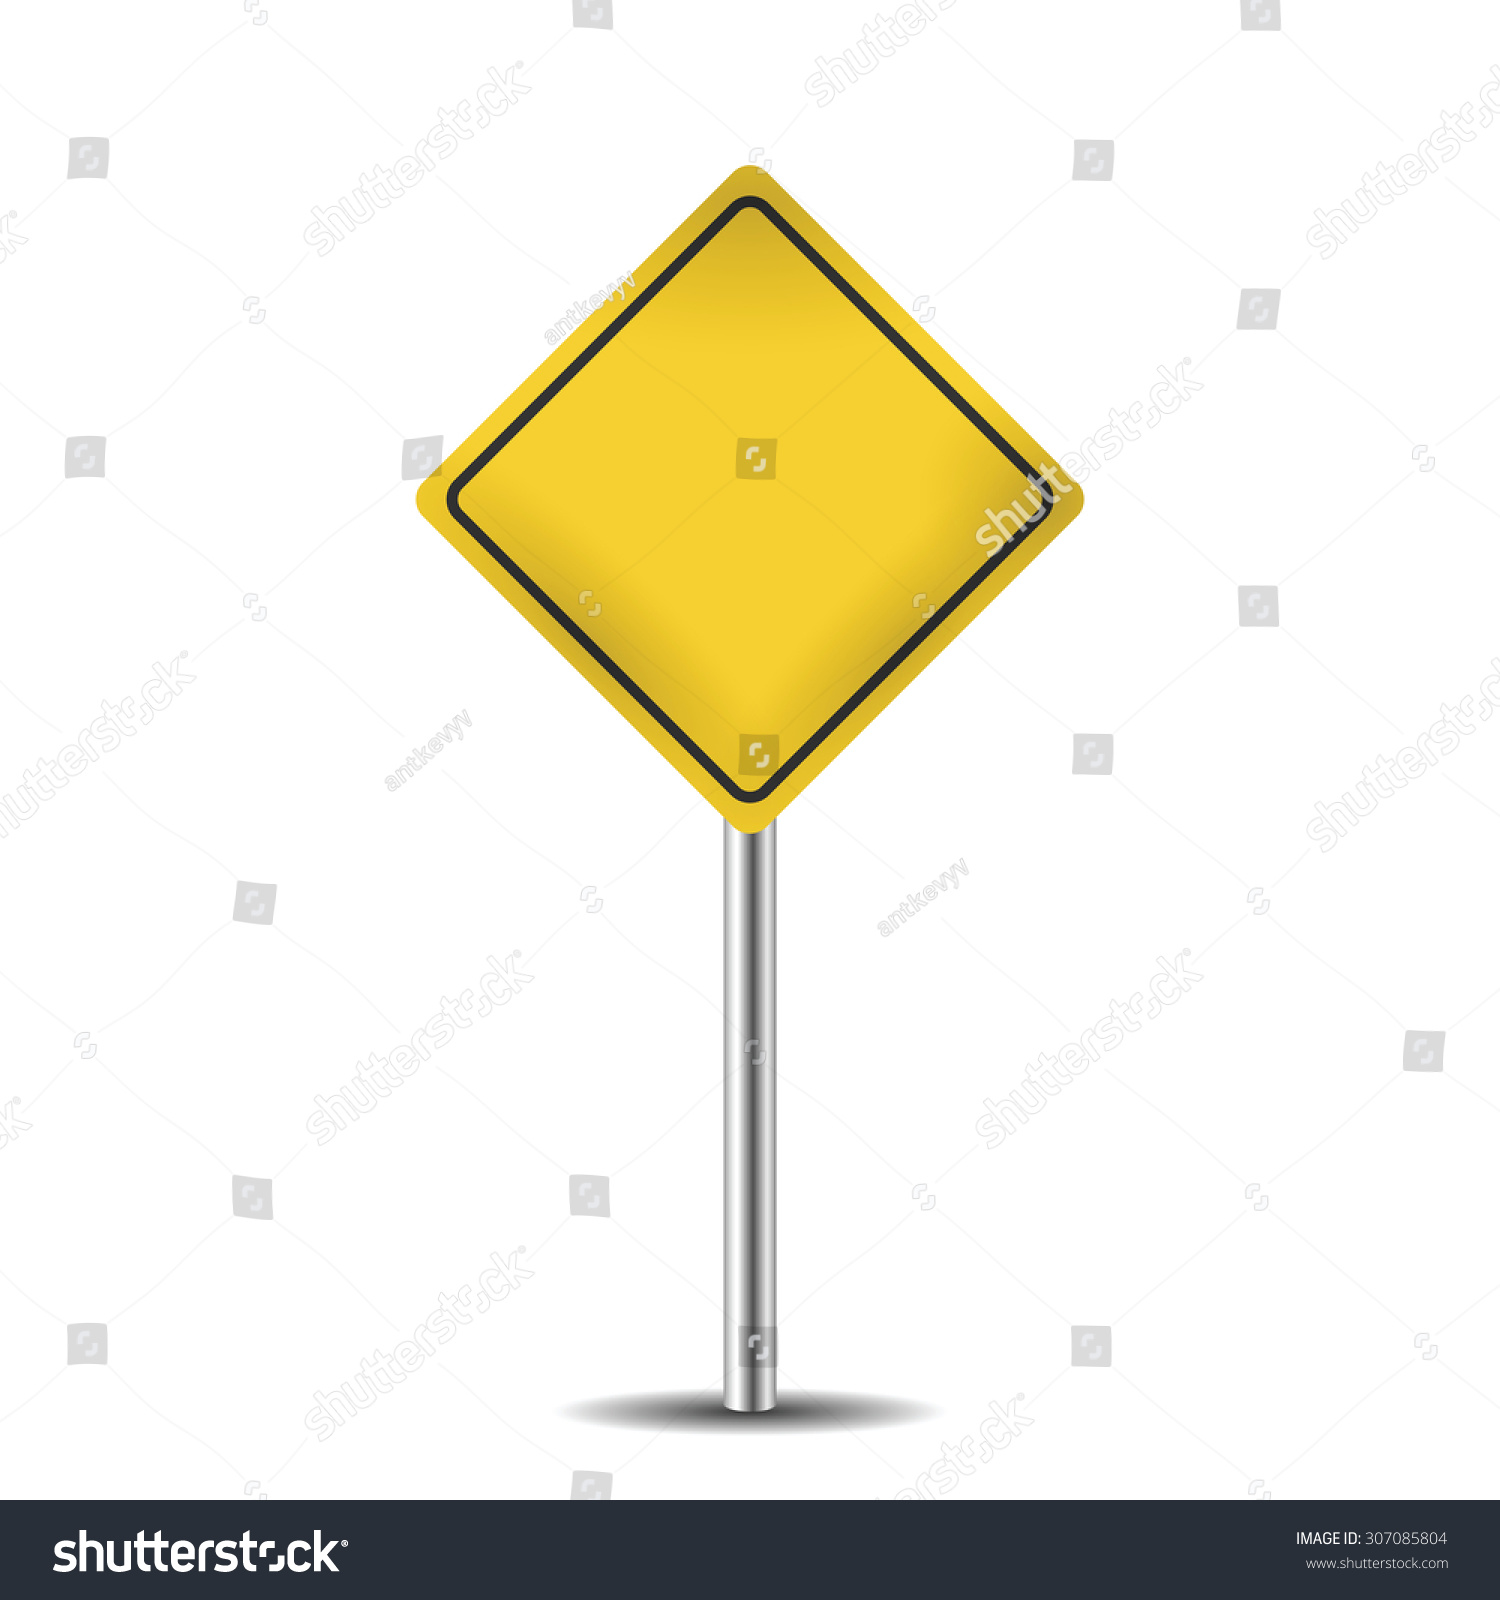 blank yellow stop sign pictures to pin on pinterest yield sign clipart svg yield sign clipart clipart